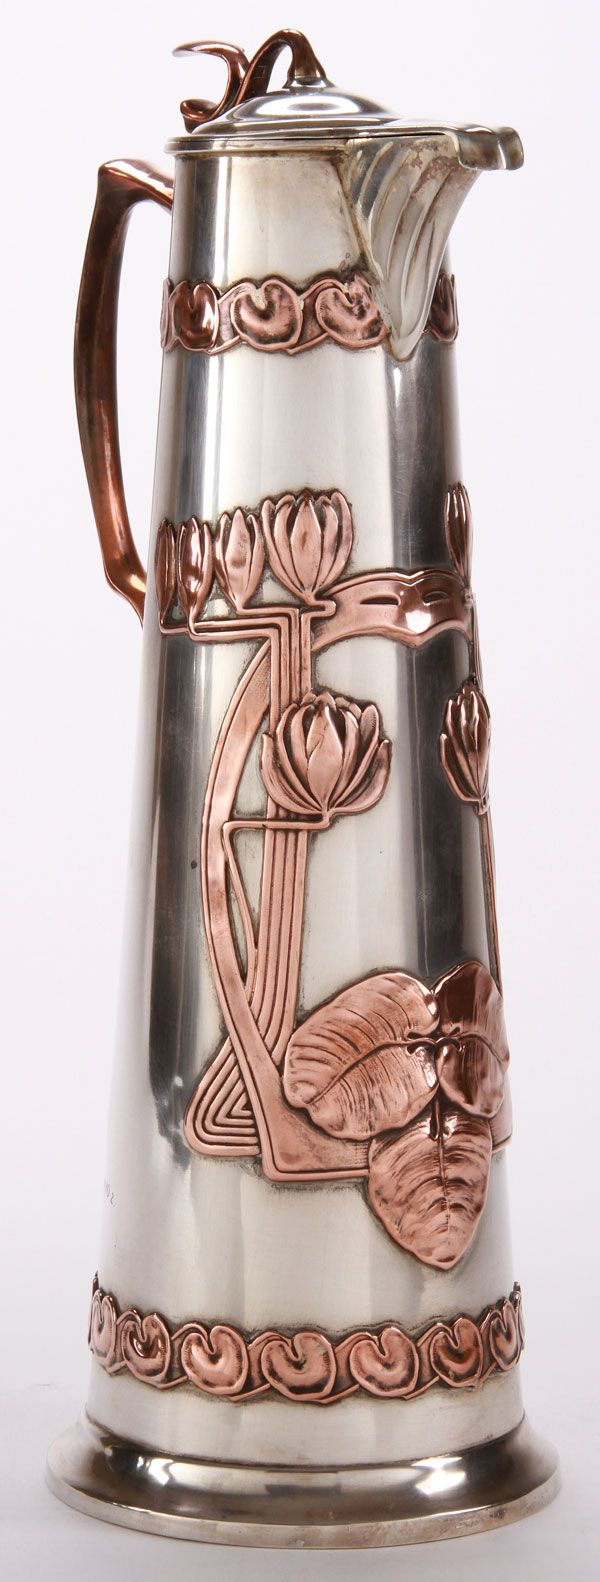 A LARGE AND IMPRESSIVE RUSSIAN SILVER ART NOUVEAU WINE CARAFE, 1ST ARTEL, MOSCOW, 1908-1917. Of tapered cylindrical form, the base banded with copper plated lily leaves and the front with raised Art Nouveau design of water lillies. With hinged lid and copper plated handle. Verso with dedicatory inscription dated 1910. Hallmarked Moscow 1908-1917, and with Cyrillic maker's mark of the 1st Artel and 84 silver standard.